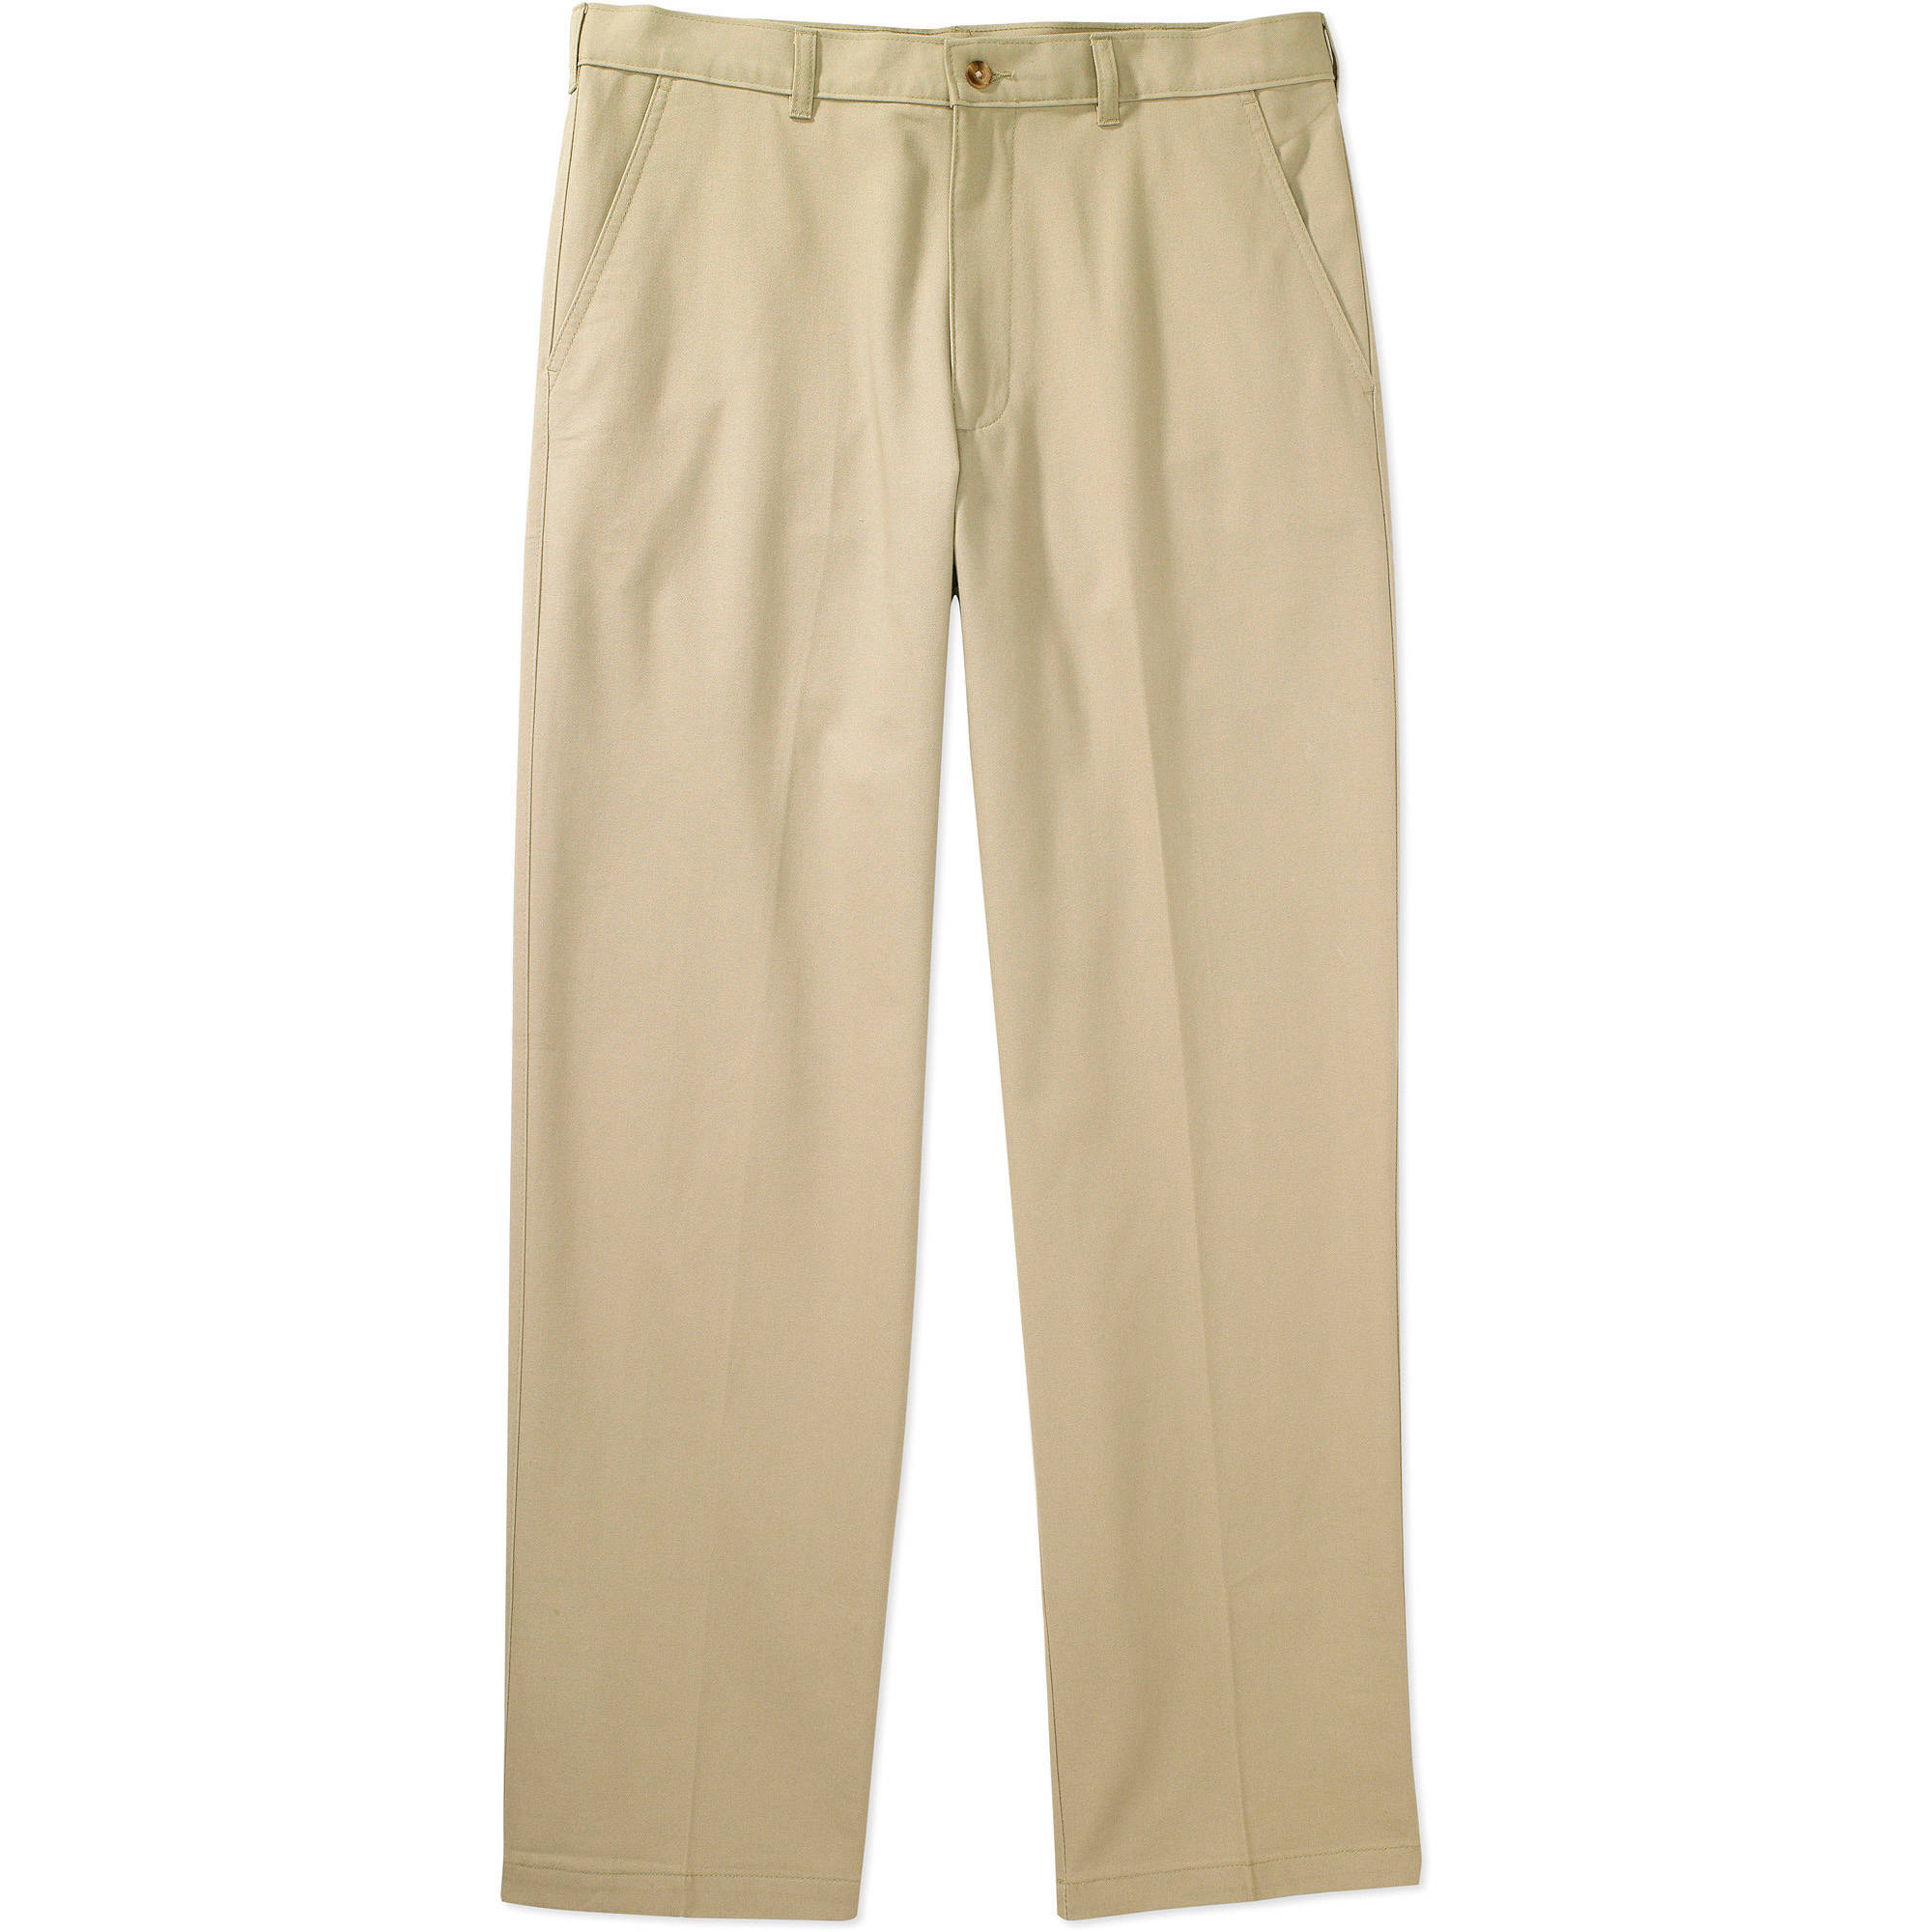 George - Big Men's Flat -Front Wrinkle-Resistant Pants